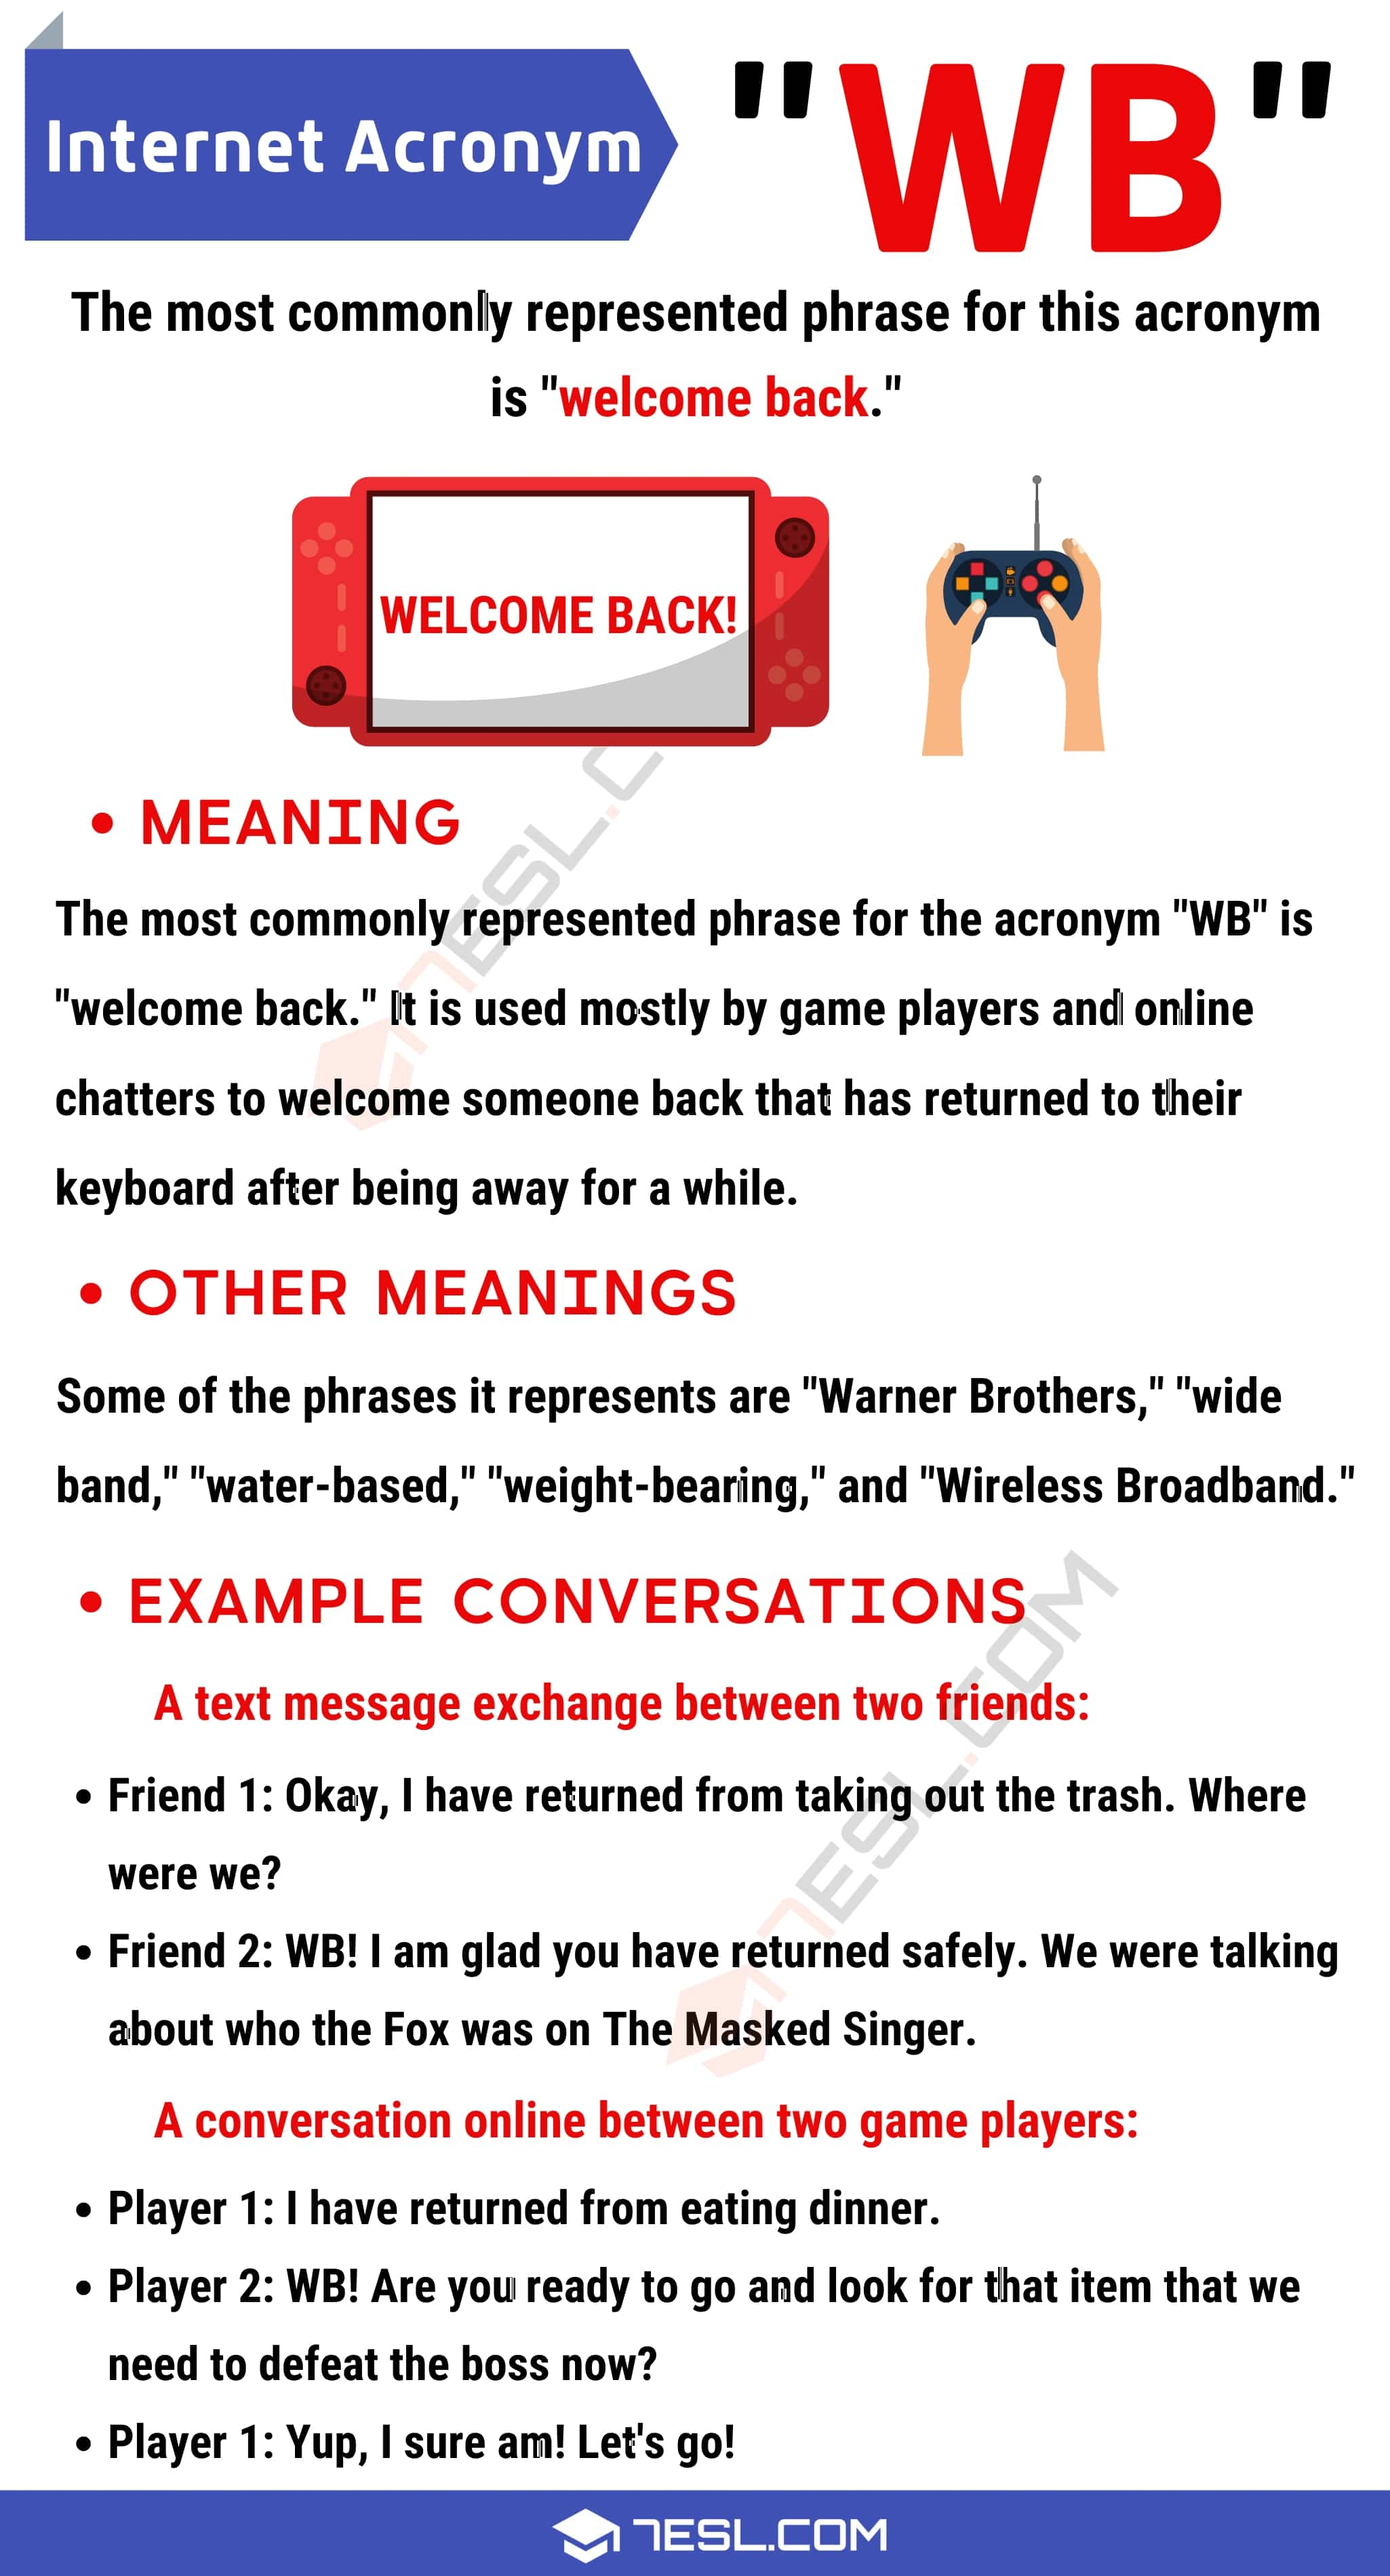 WB Meaning: The Definition of WB and How to Use It Correctly